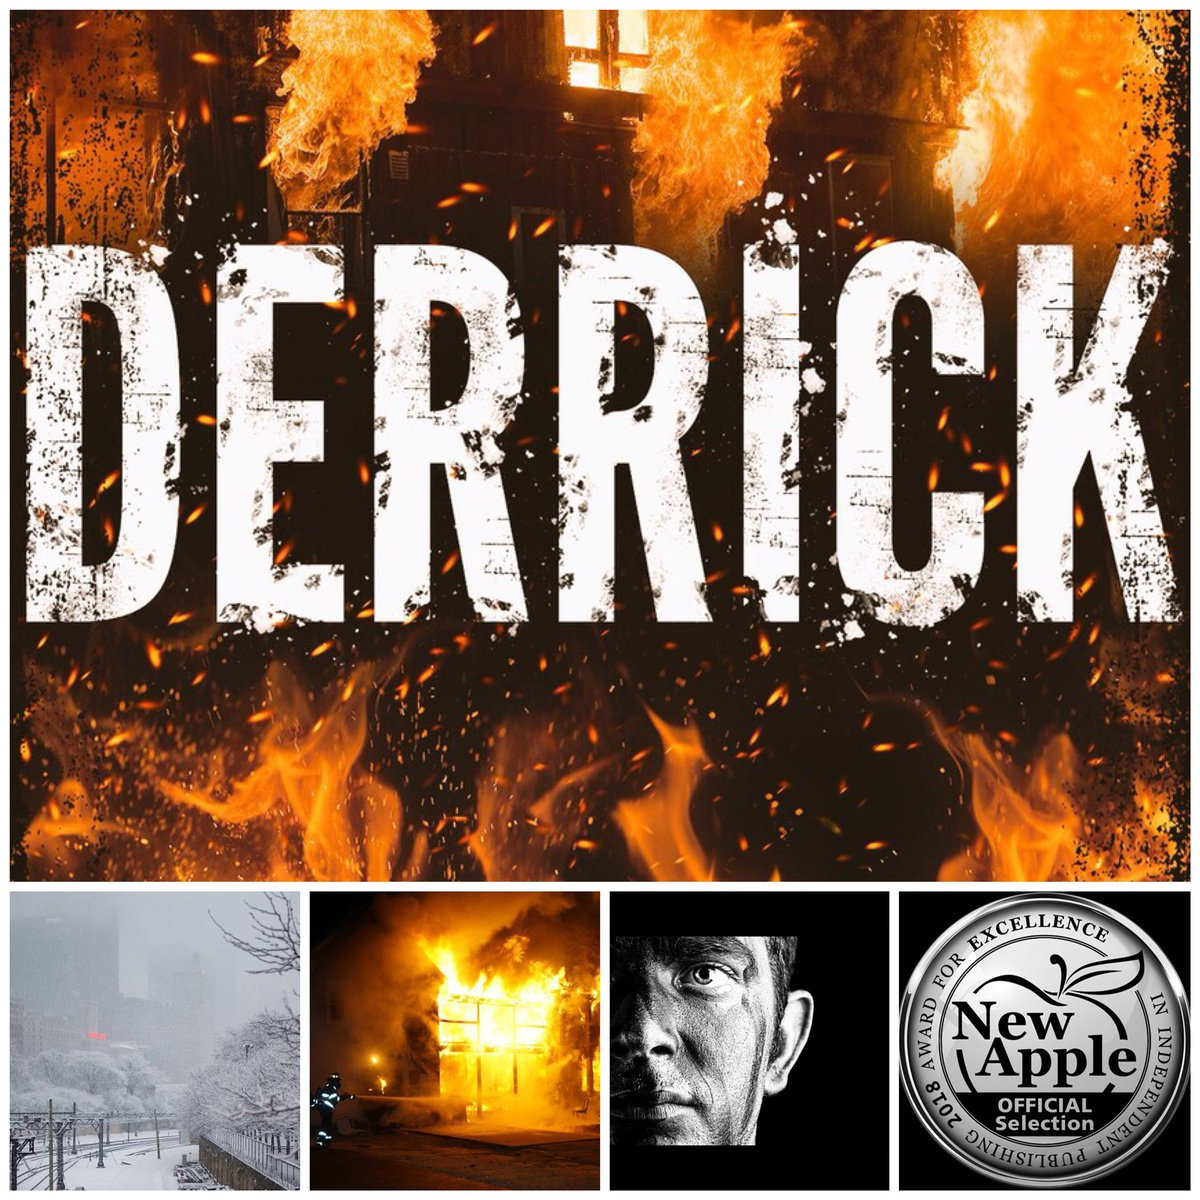 Deadly explosions across Chicago leave a trail of seemingly random female victims... The arsonist is just beginning... #psychological #thriller #graphic  #horror #provocative #dark #thriller #sequel https://www.amazon.com/Derrick-Second-Installment-Gavin-Biography/dp/1721220054/ref=sr_1_3?s=books&ie=UTF8&qid=1543671973&sr=1-3&keywords=Derrick+by+russell…pic.twitter.com/CF1Q9oAlGn